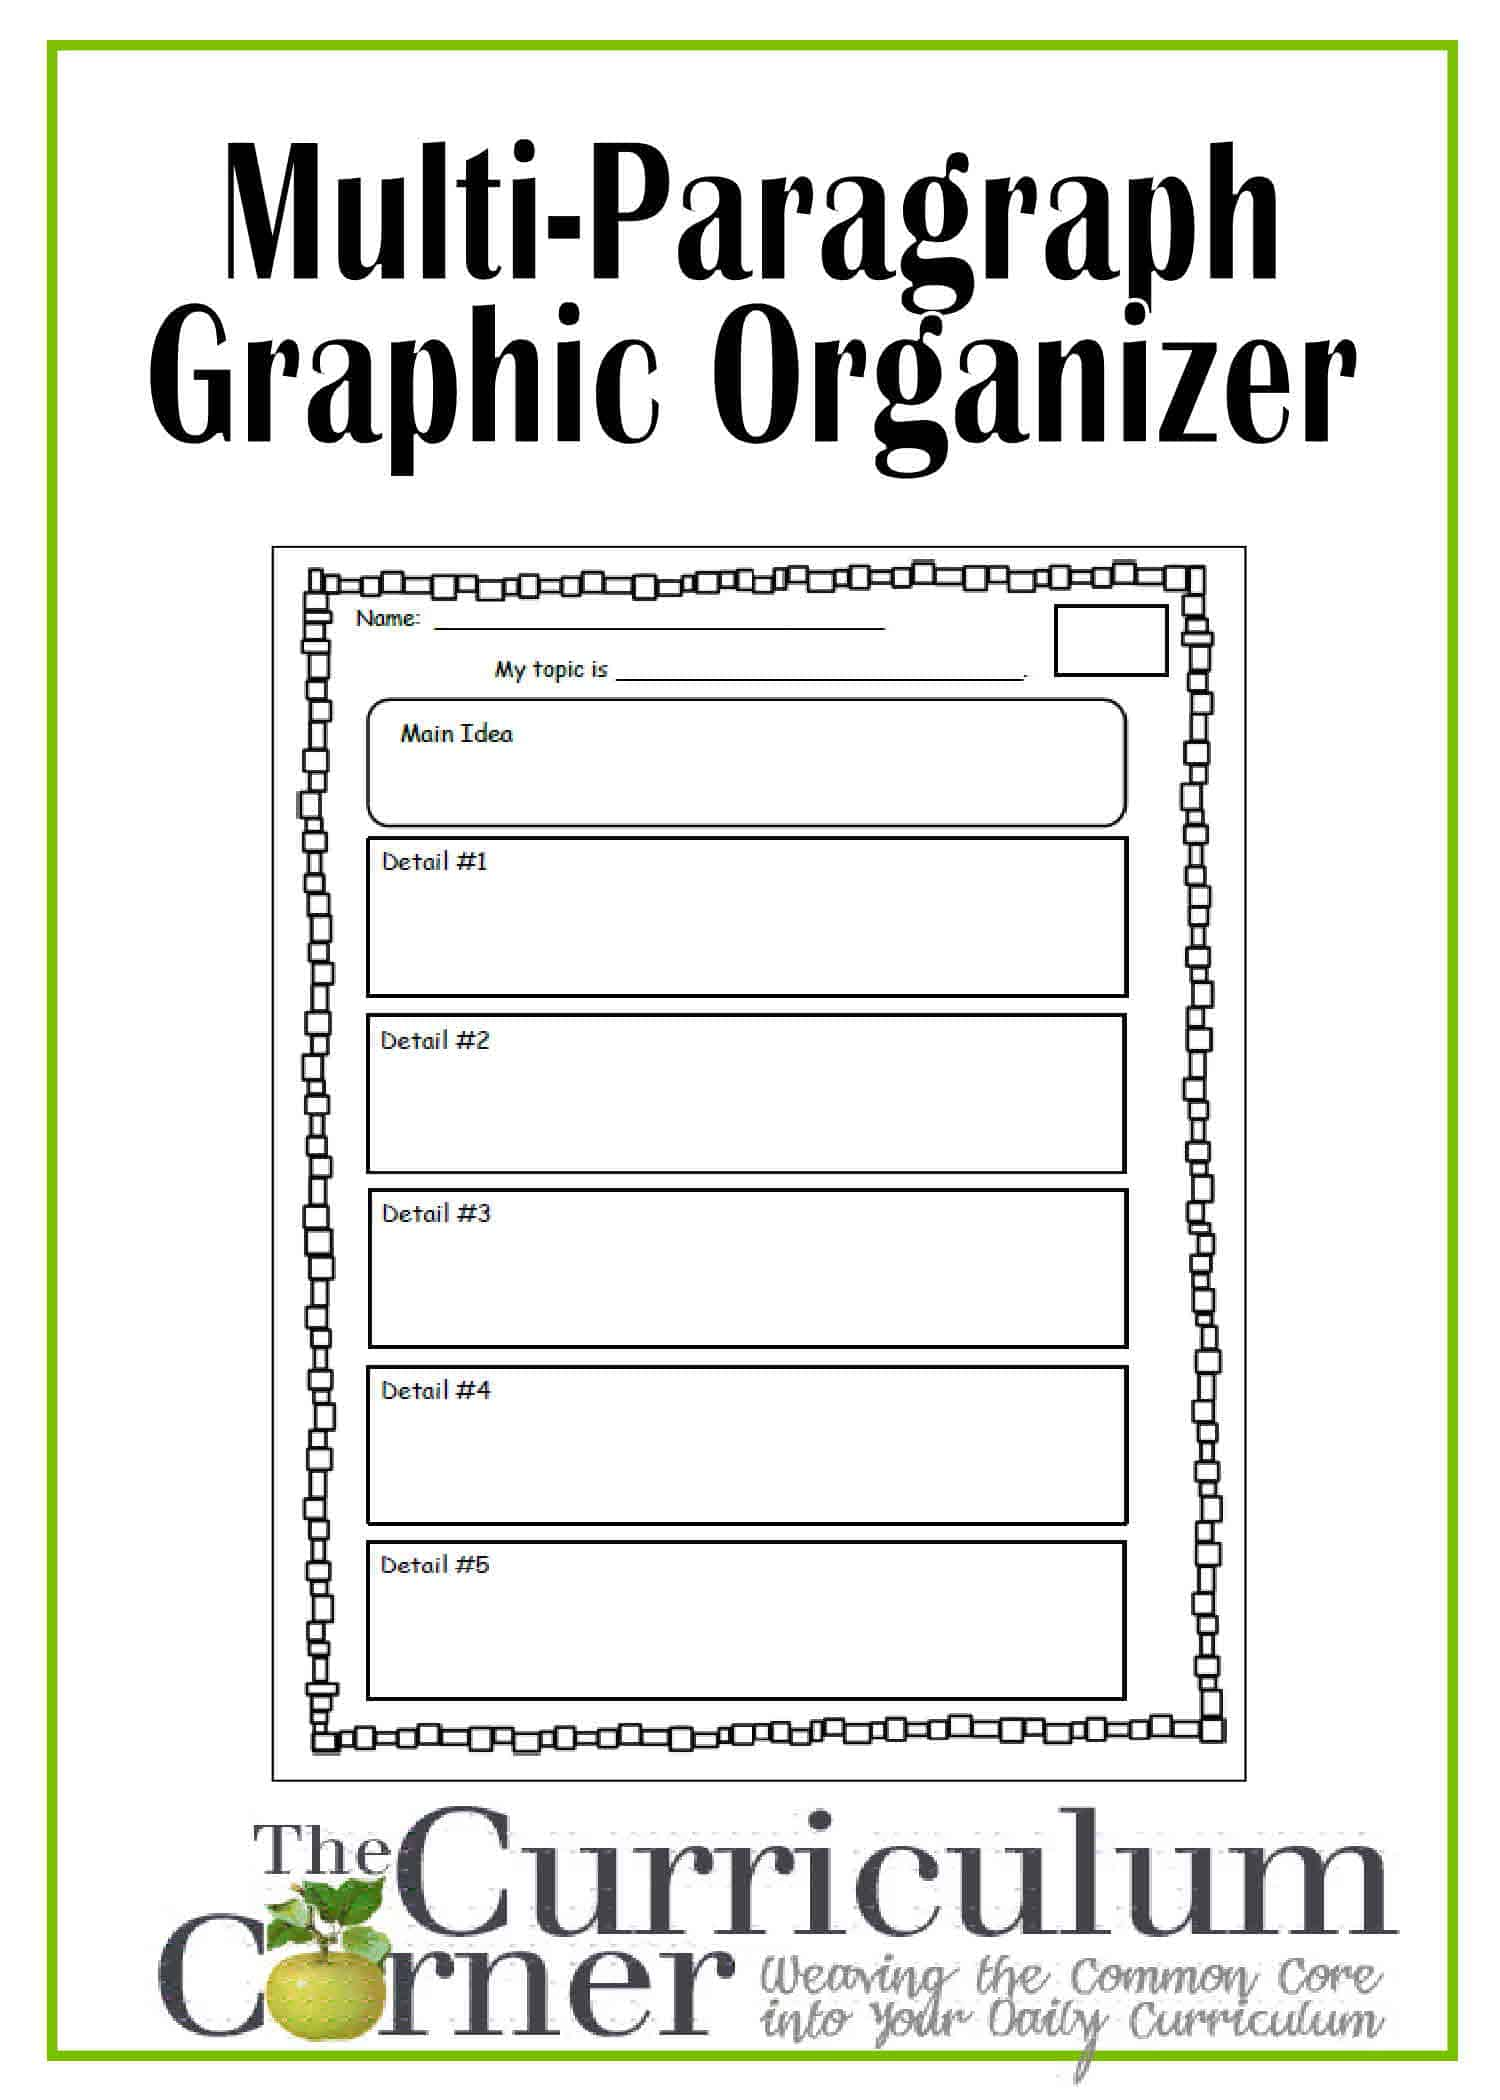 Graphic Organizer For Multi Paragraph Research Papers